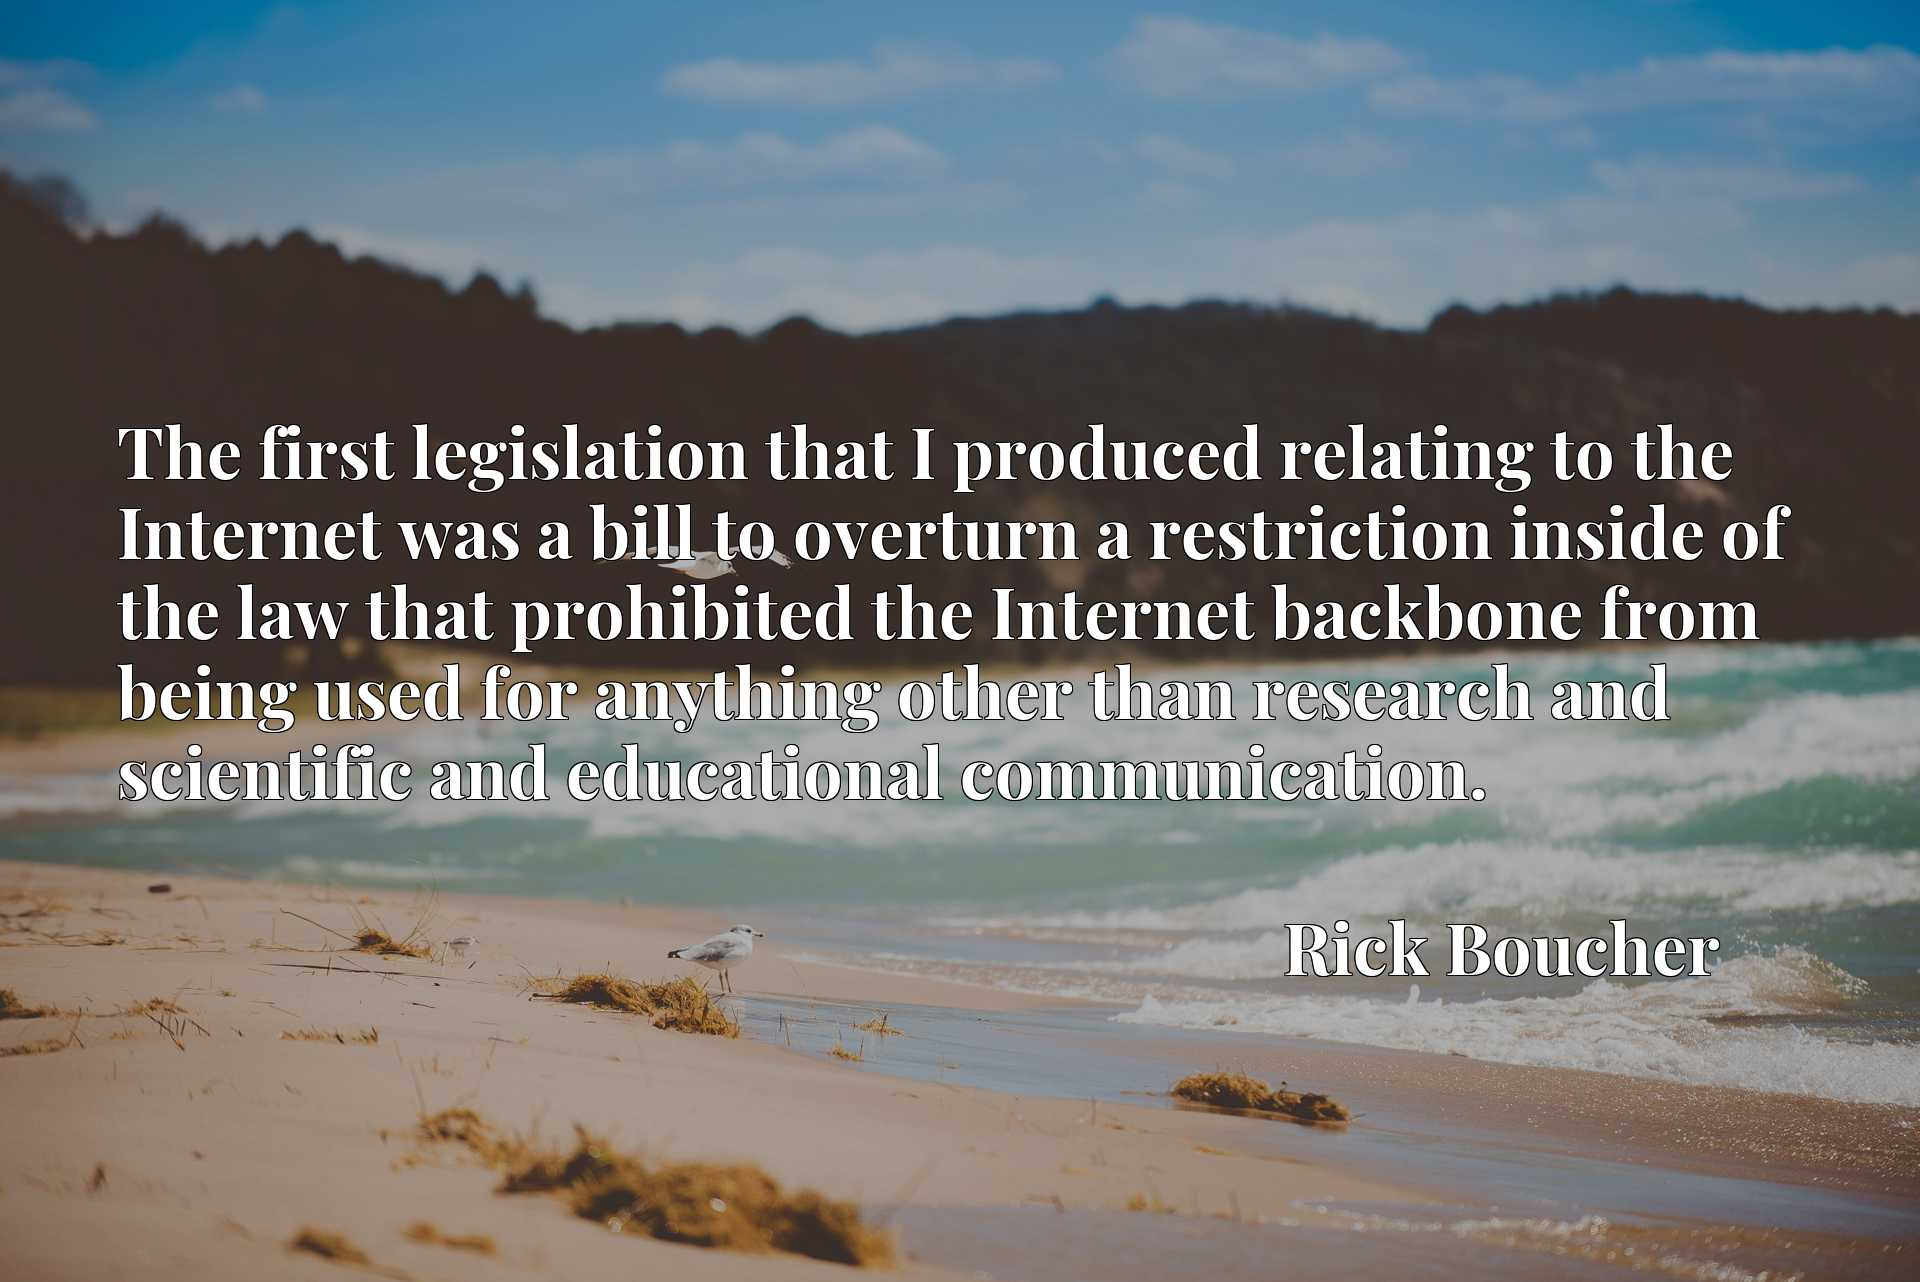 The first legislation that I produced relating to the Internet was a bill to overturn a restriction inside of the law that prohibited the Internet backbone from being used for anything other than research and scientific and educational communication.